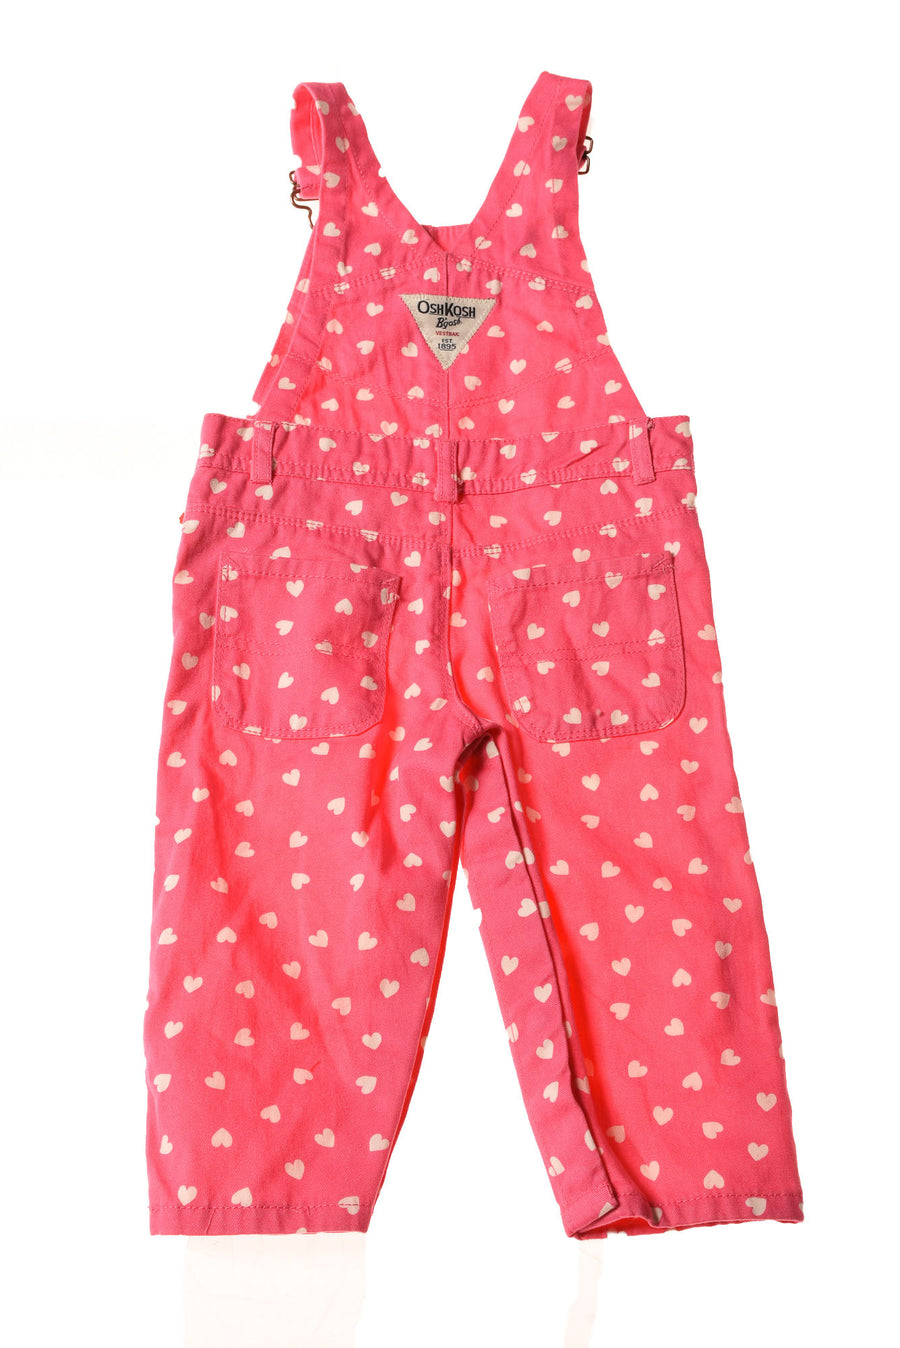 NEW Oshkosh Baby Girl's Pants 12 Months Pink